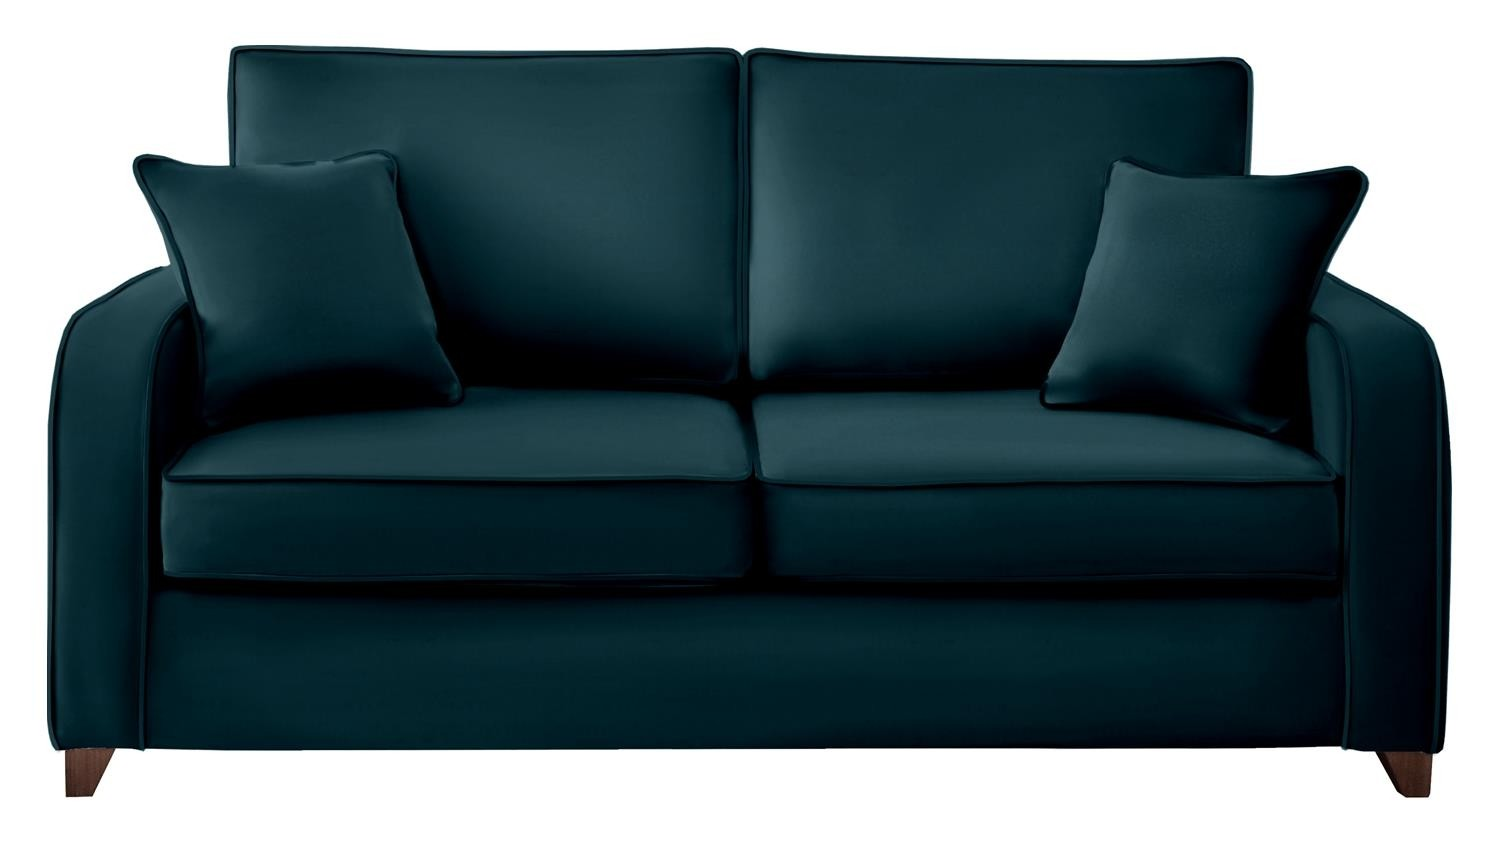 The Dunsmore 3 Seater Sofa Bed